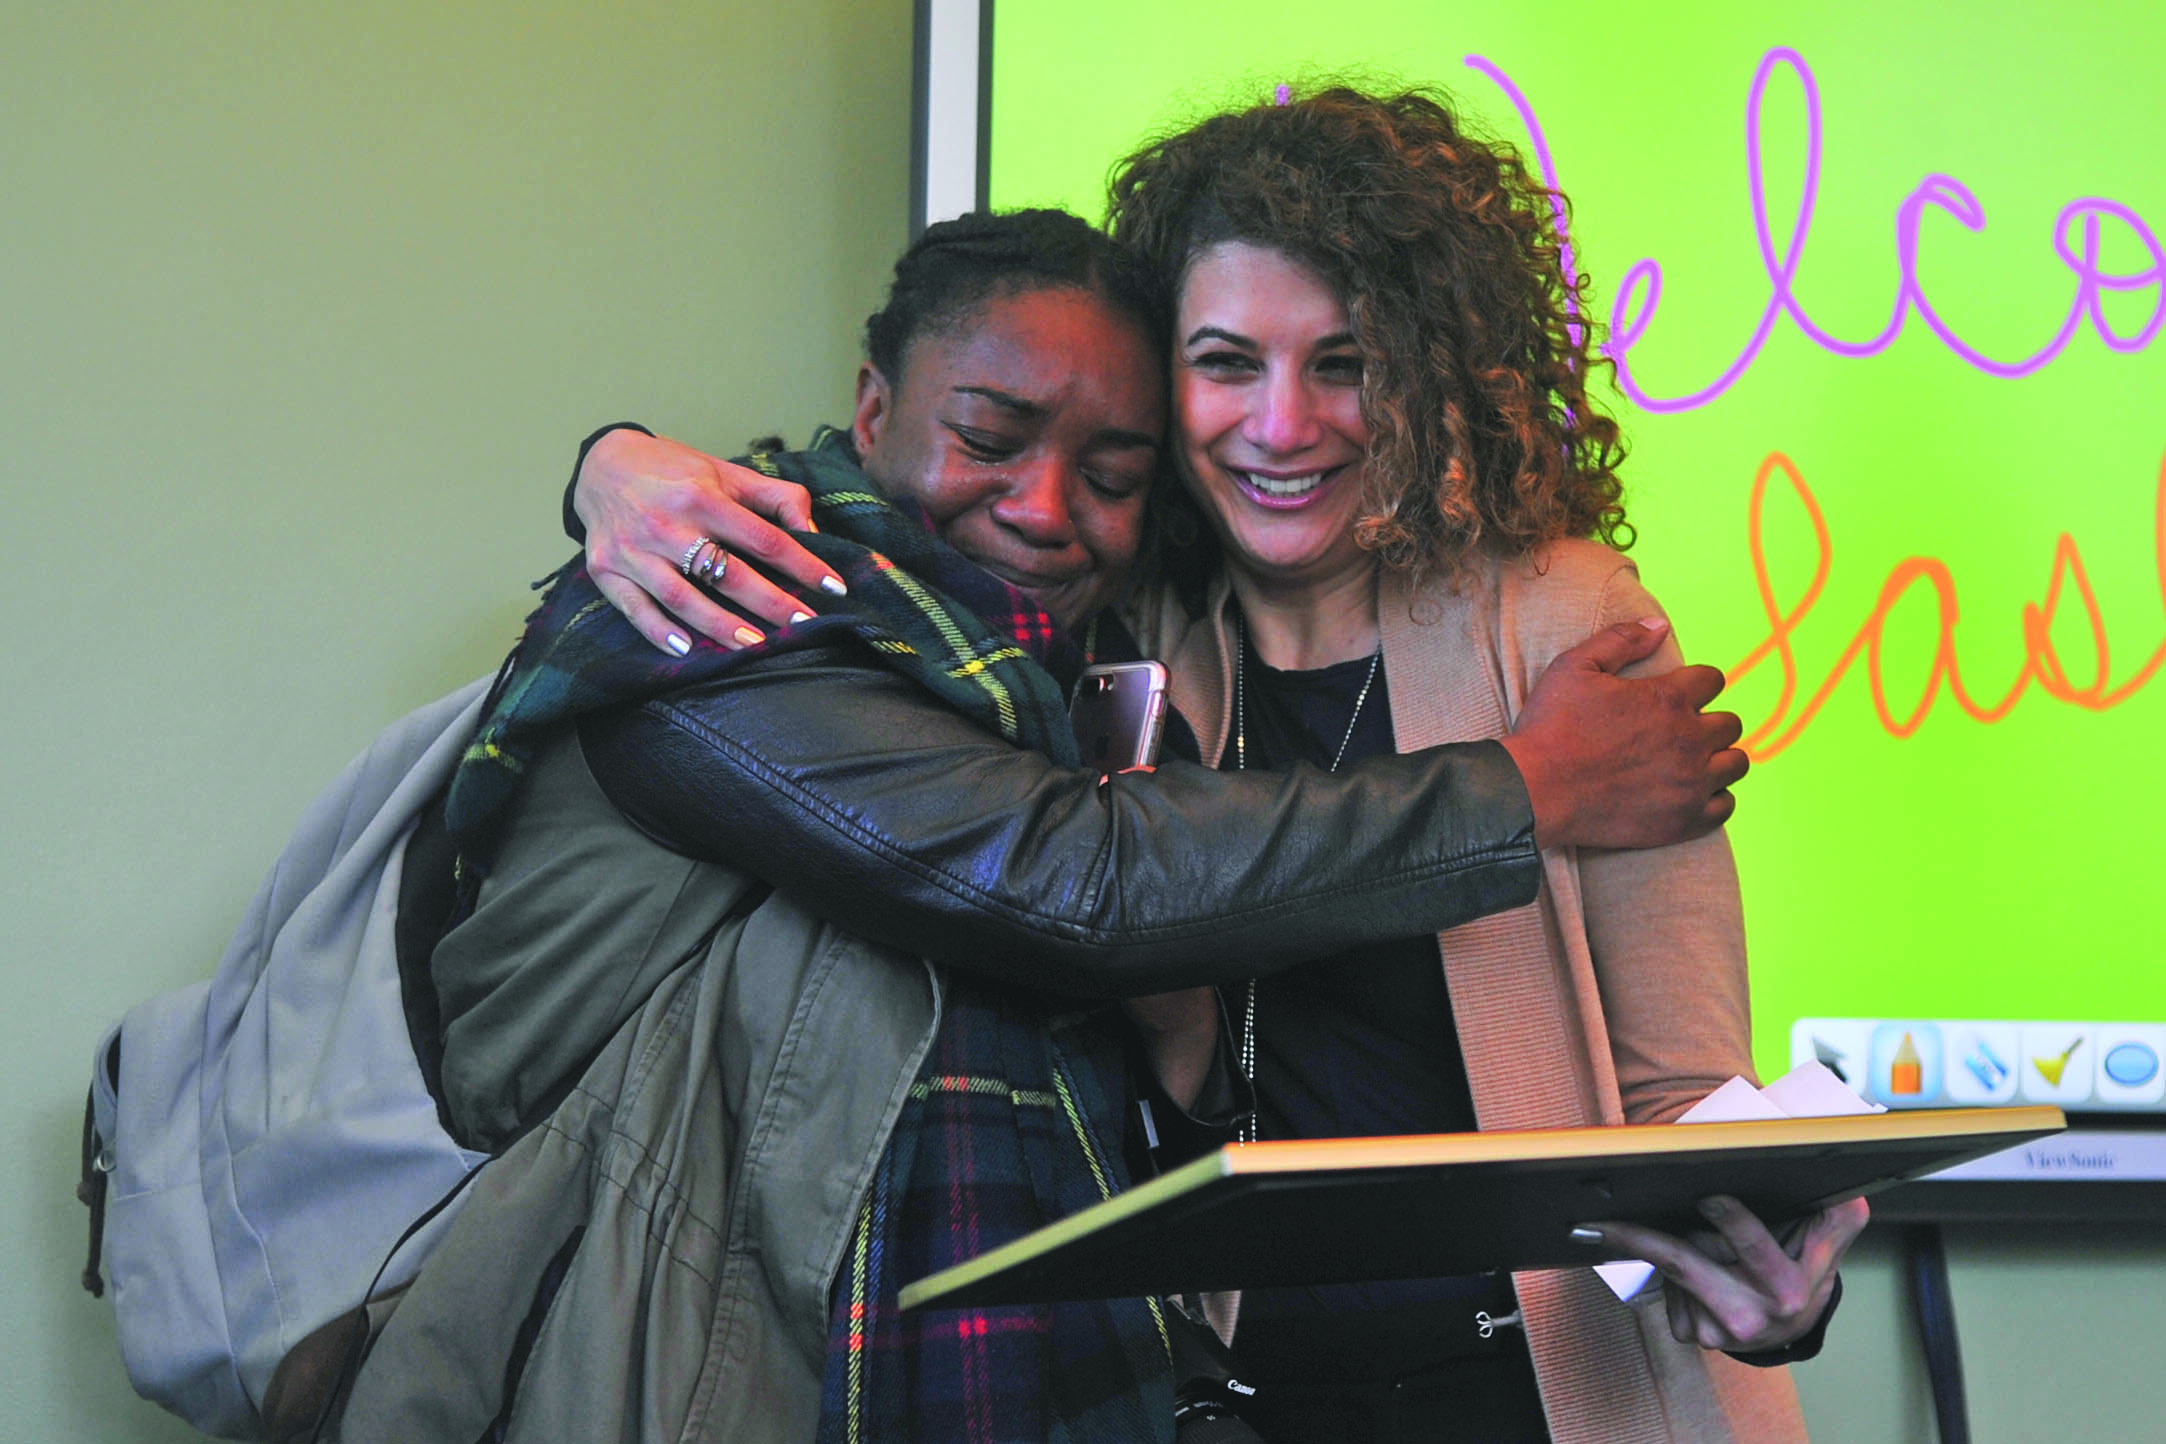 Denis Perez / The Advocate Liberal arts, social and behavioral sciences major Sasha Graham (left) hugs college President Mojdeh Mehdizadeh as she reacts to the news of winning the $40,000 per year Jack Kent Cooke Foundation Undergraduate Transfer Scholarship during a reception in the Student and Administration Building on April 18.